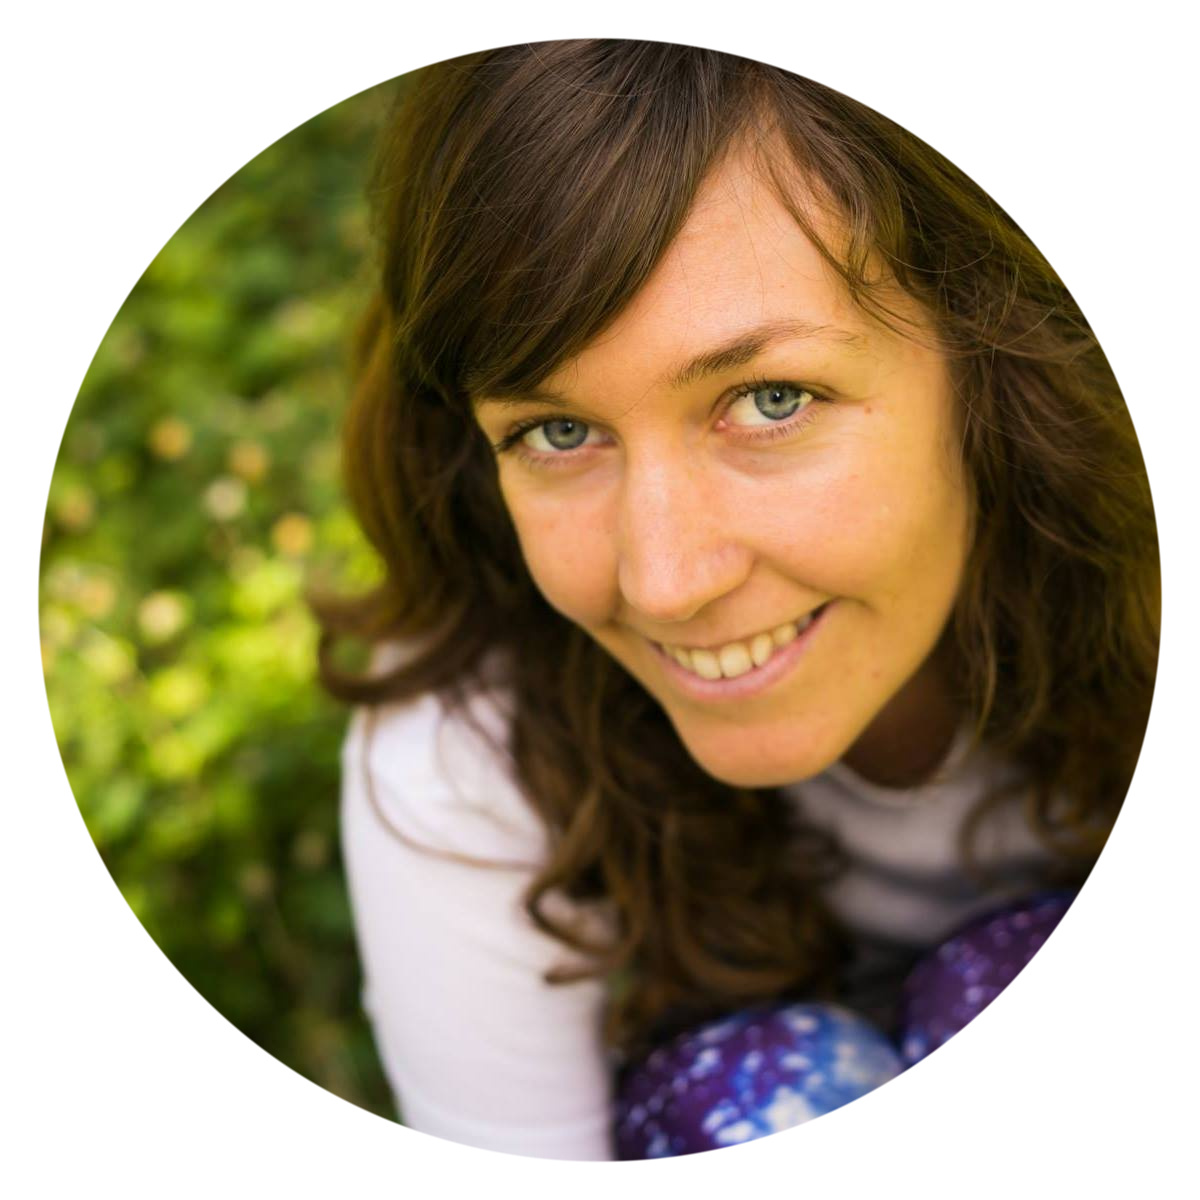 Melissa Burtenshaw - I'm here to help expand consciousness on the planet in any way I can. I'm a multi-faceted, multi-potentialite, published author/illustrator of Fairytales and Nursery Rhymes for the New Earth, Certified Level 1,2, and 3 Zhineng qigong teacher, channel for creativity, Dream Medicine woman, dream weaver for the collective consciousness, and magical unicorn.I'm passionate about helping people find inner peace, so that we can in turn create peaceful societies and a peaceful world. I have been been on my journey of personal development for a while now and I've explored many modalities of healing such as; yoga, dream work, meditation, qigong, and many other paths to healing.For more information about my offerings to the collective, check out my website: www.melissaburtenshaw.comInstagram: @unicorn_from_the_stars